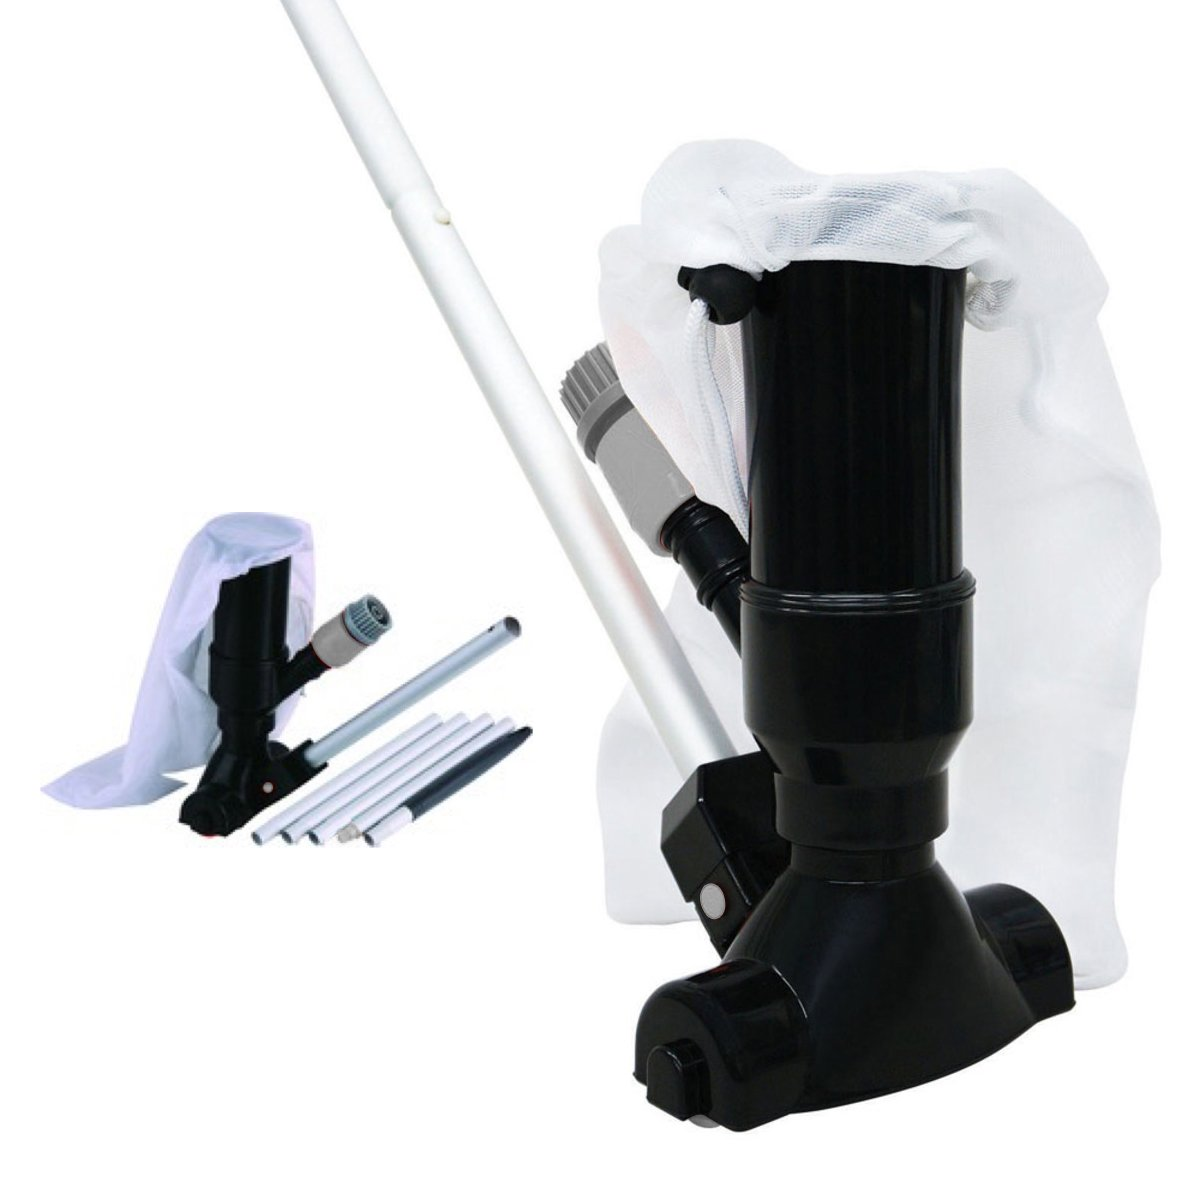 Swimming Pool Jet Vacuum Cleaner With Pole Vac Hoover Clean Maintenance Cleaning Suction Spa Hydroswim